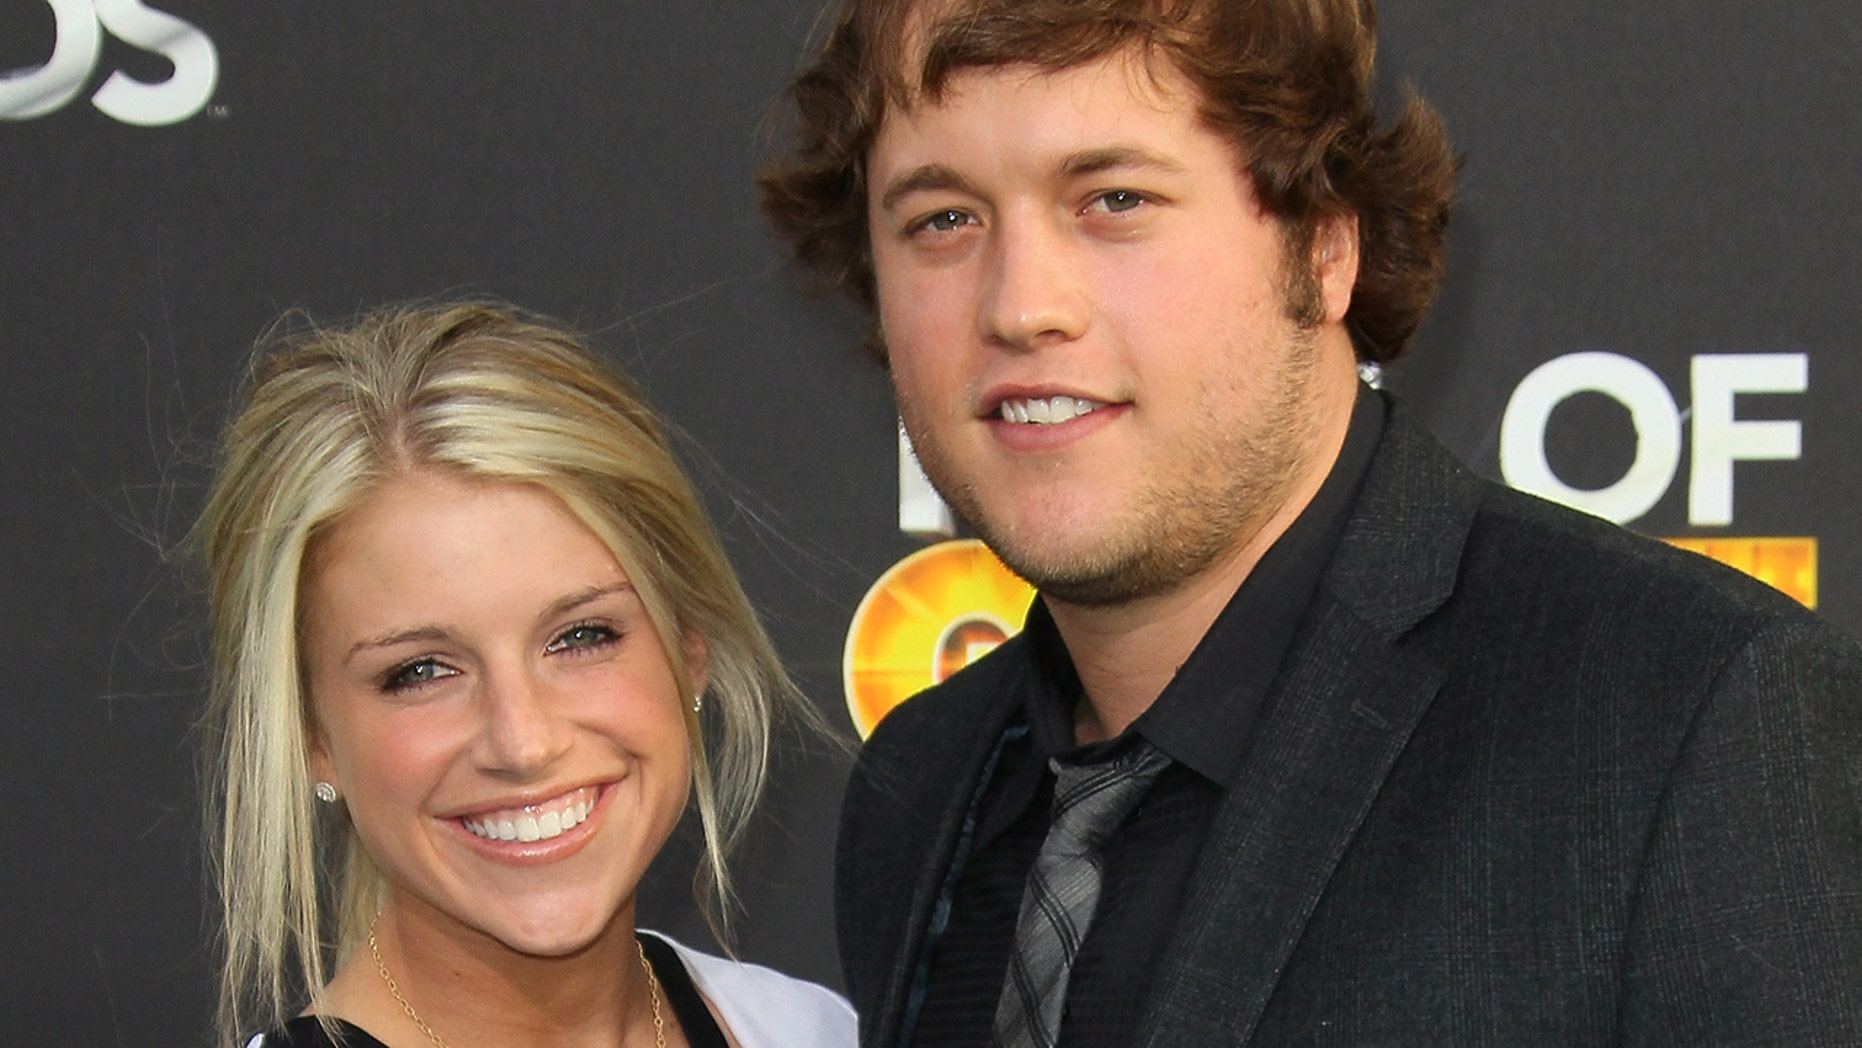 NFL player Matthew Stafford, right, and Kelly Hall attend the 2nd Annual Cartoon Network Hall of Game Awards at Barker Hangar on February 18, 2012 in Santa Monica, California.